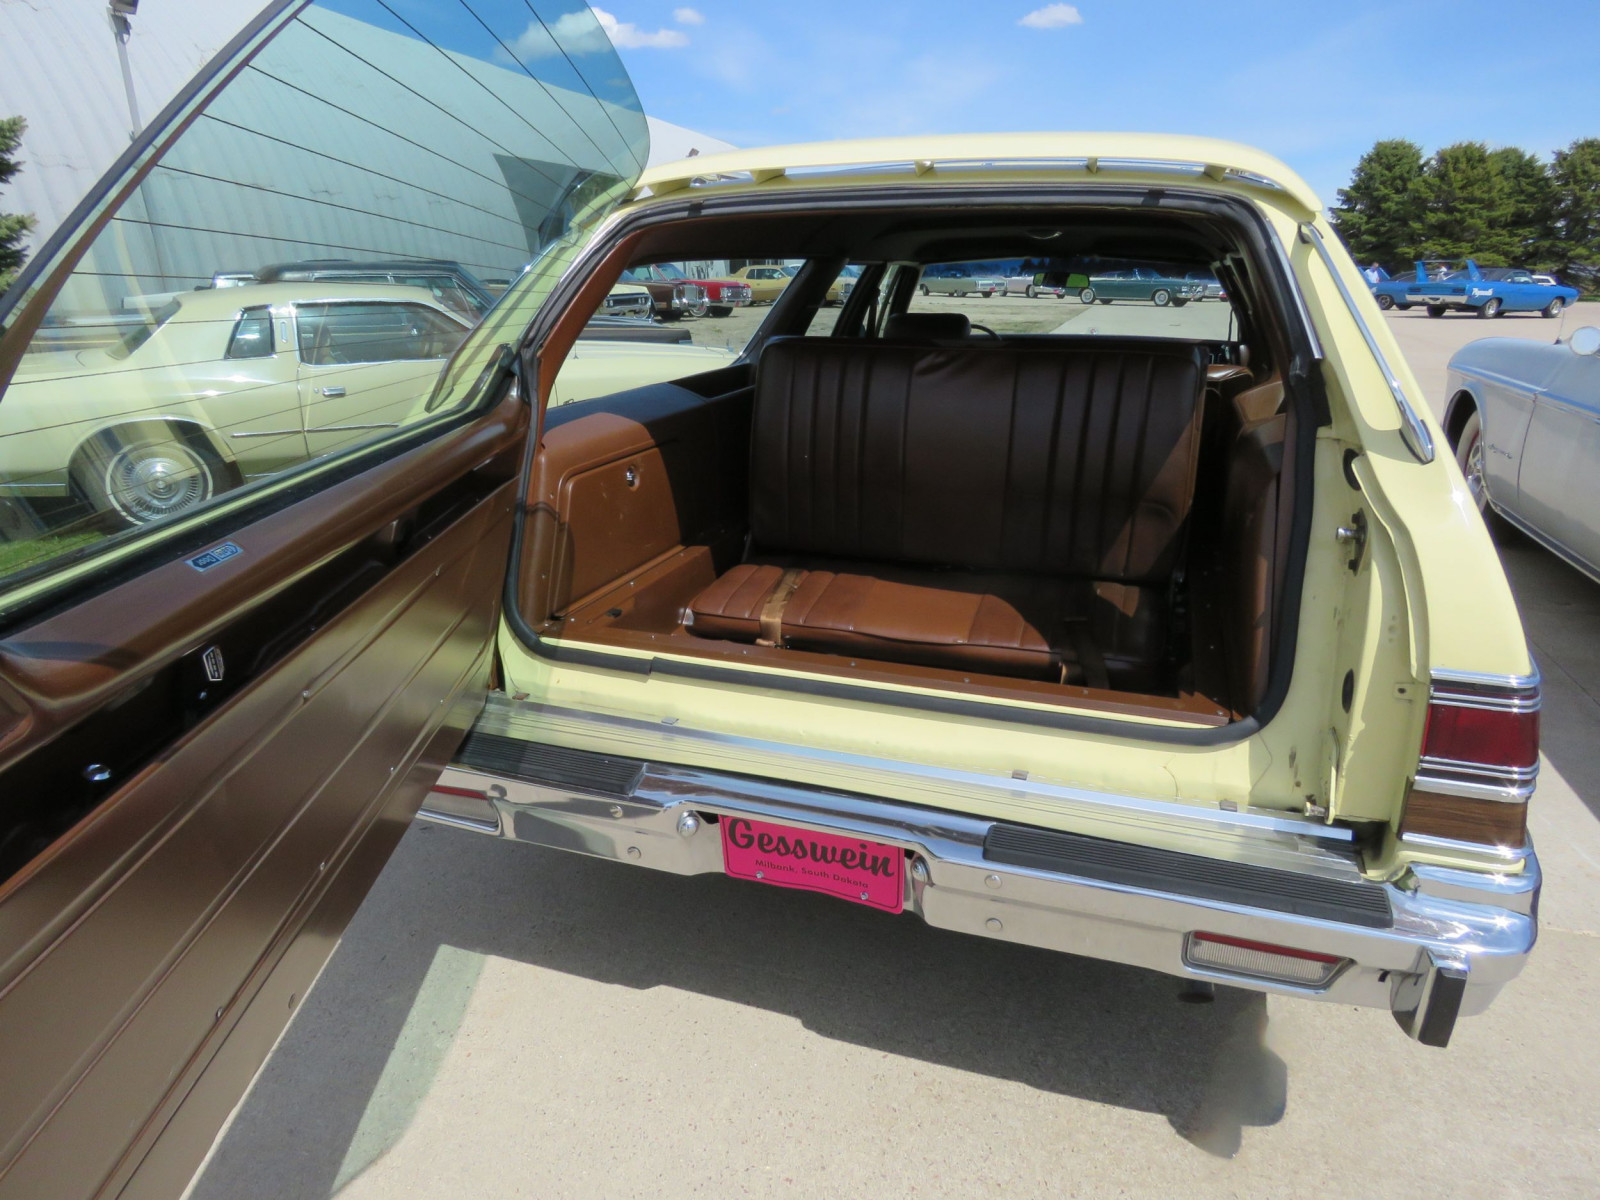 1977 Chrysler Town & Country Wagon - Image 10